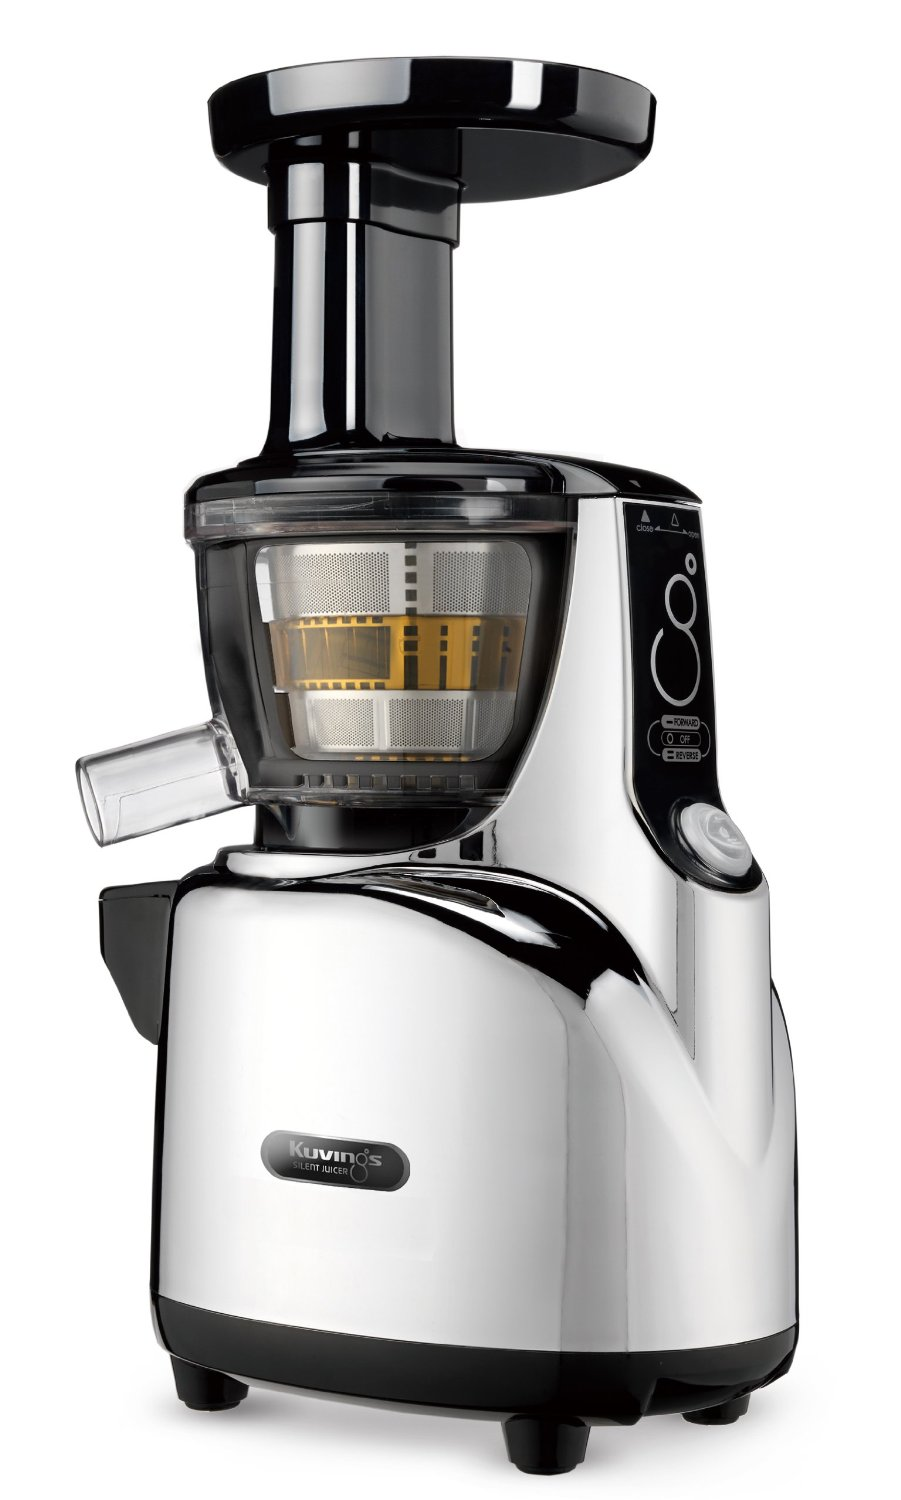 Review Of Kuvings Whole Slow Juicer : 5 Best Kuvings Juicer Reviews UPDATED: 2018 The Home Savant